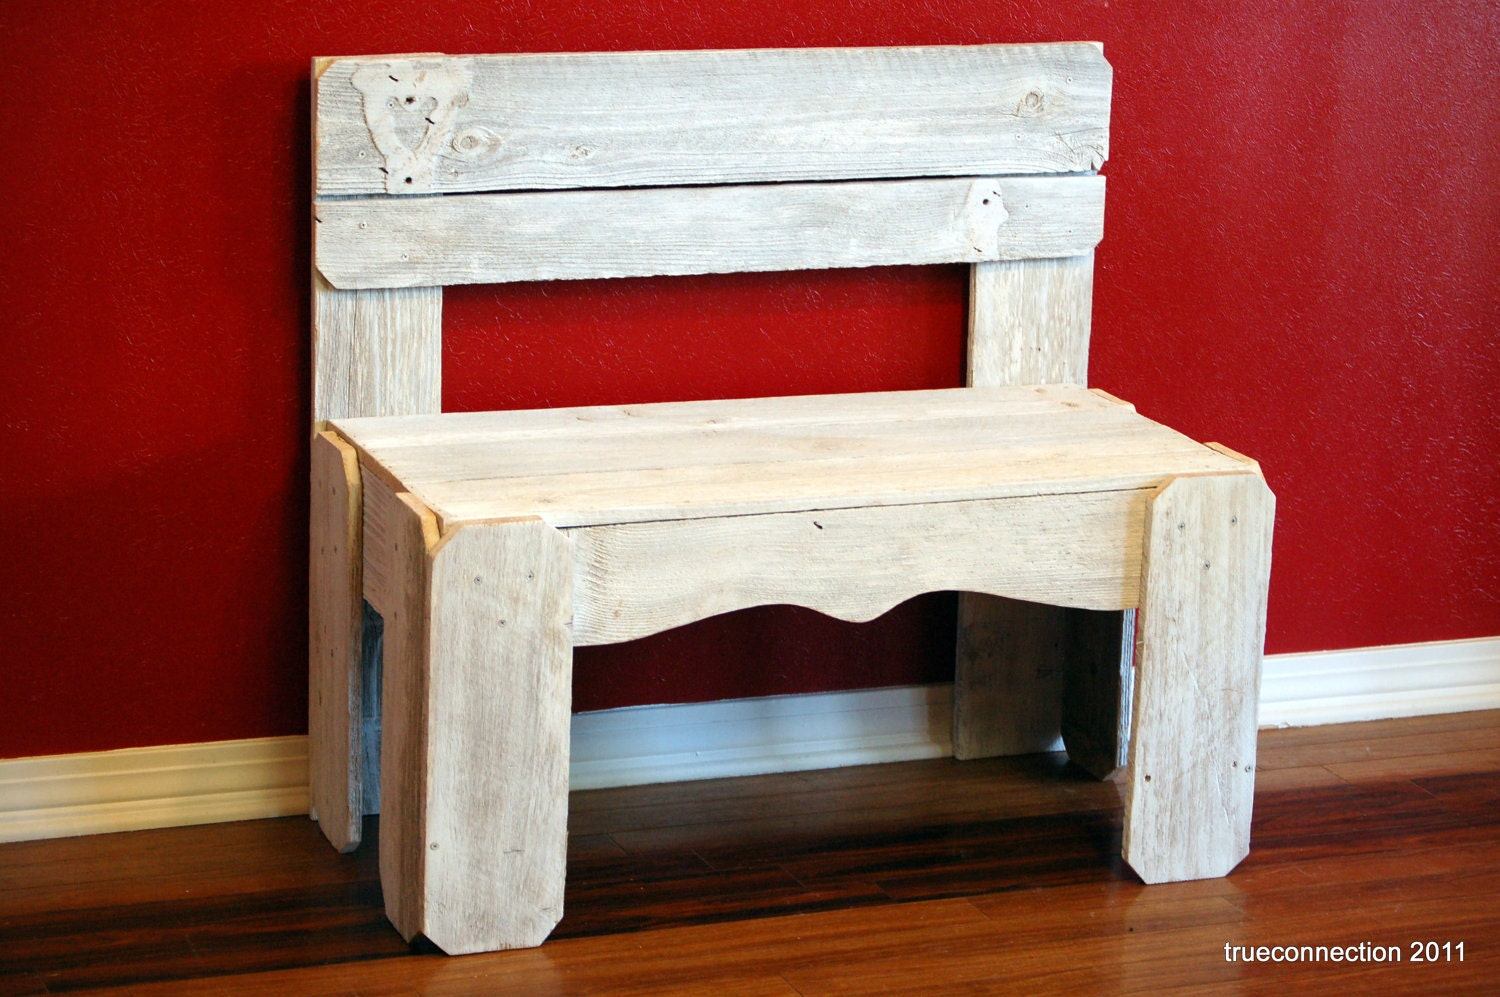 Popular items for white wood furniture on Etsy